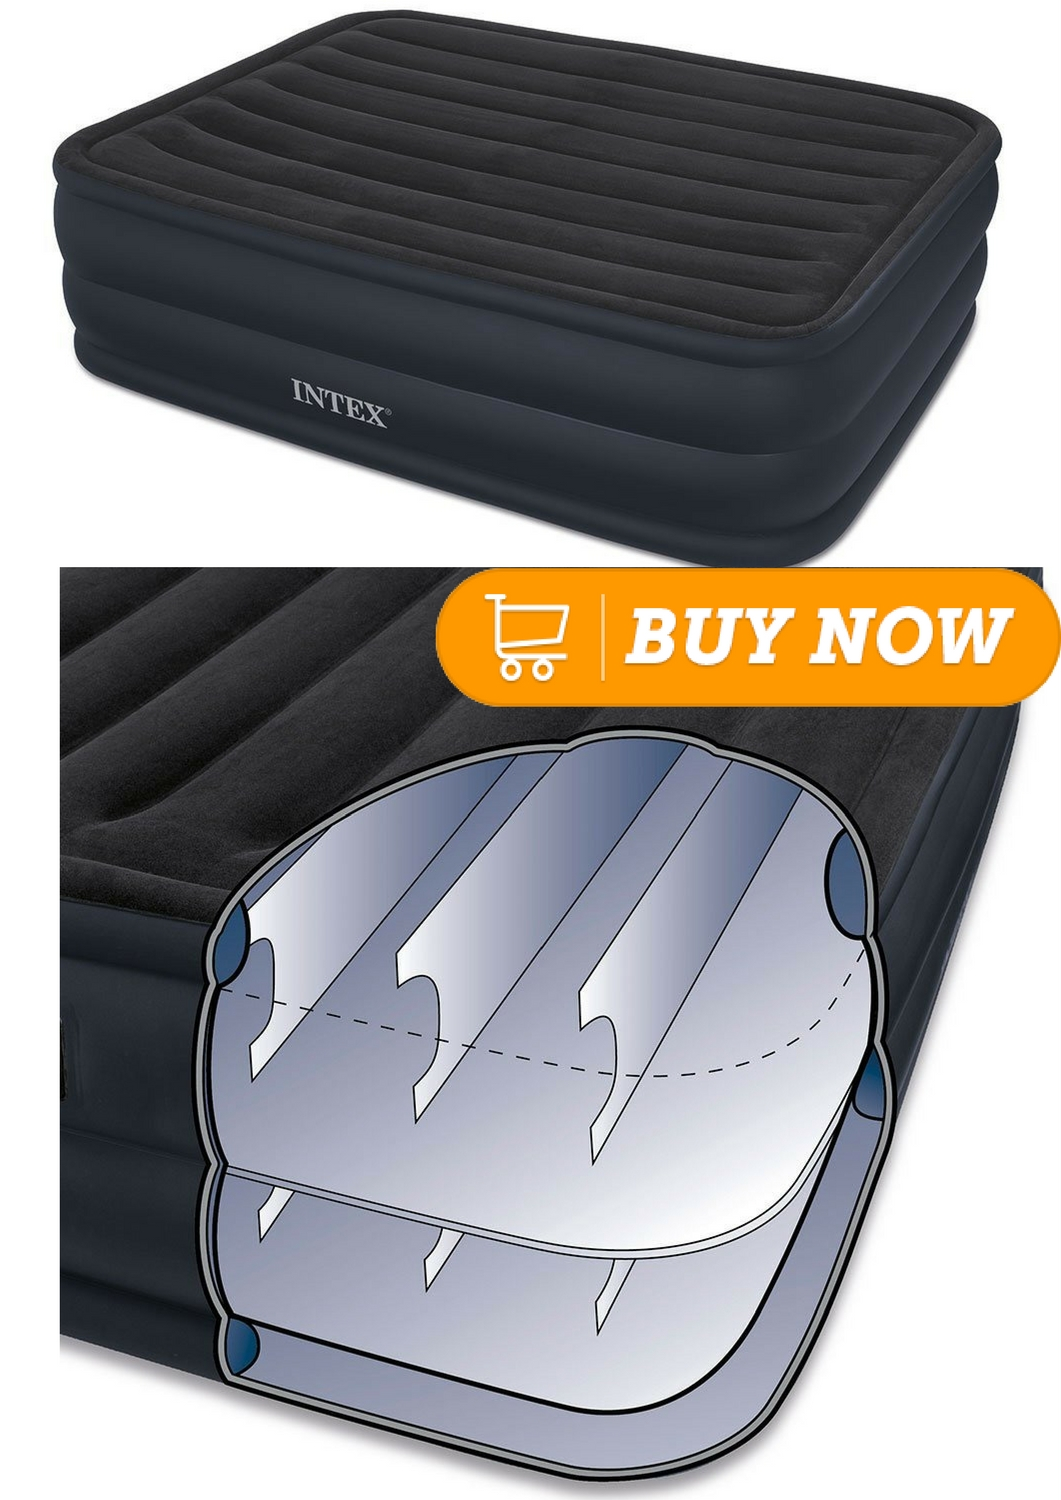 Intex Built In Pump Intex Raised Downy Airbed With Built In Electric Pump Queen Bed